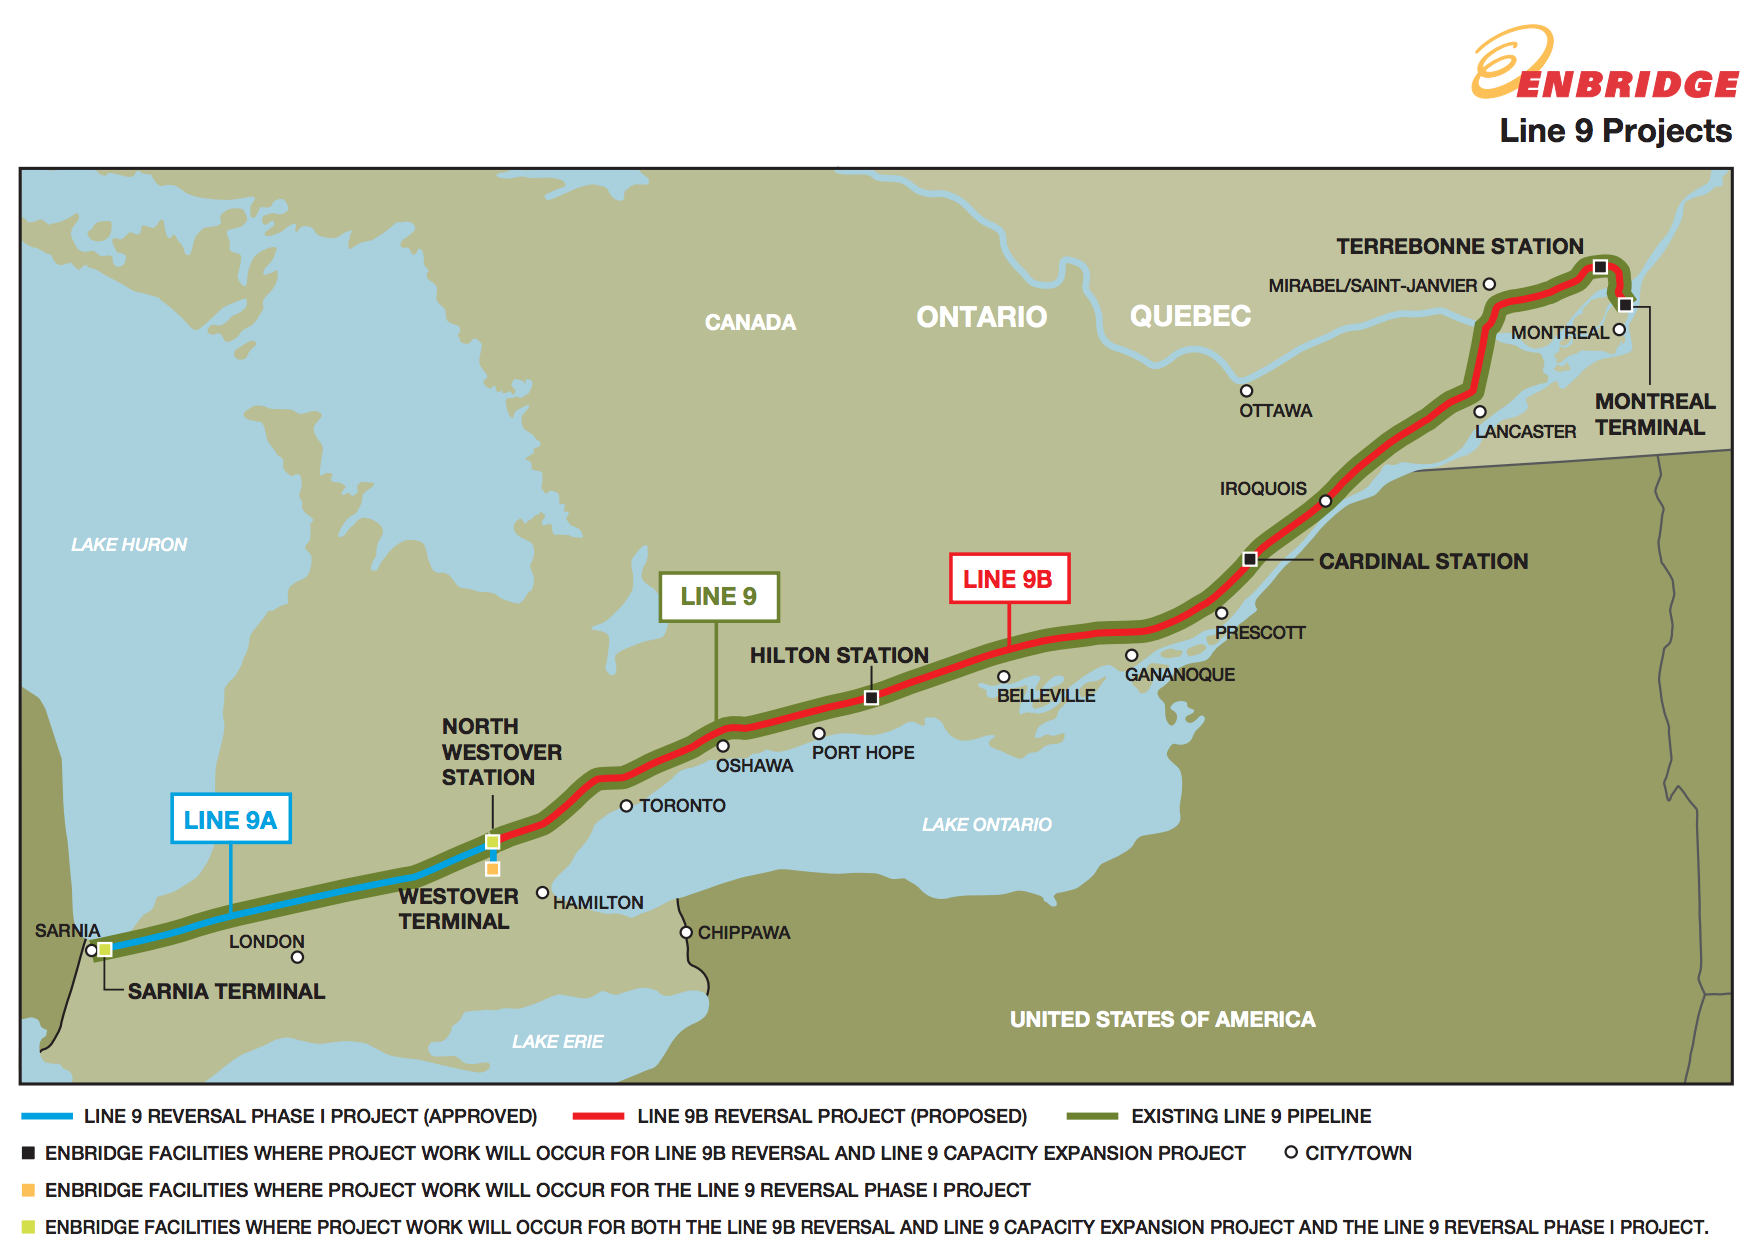 Enbridge Insists Its Line 9 Pipeline Meets All Safety